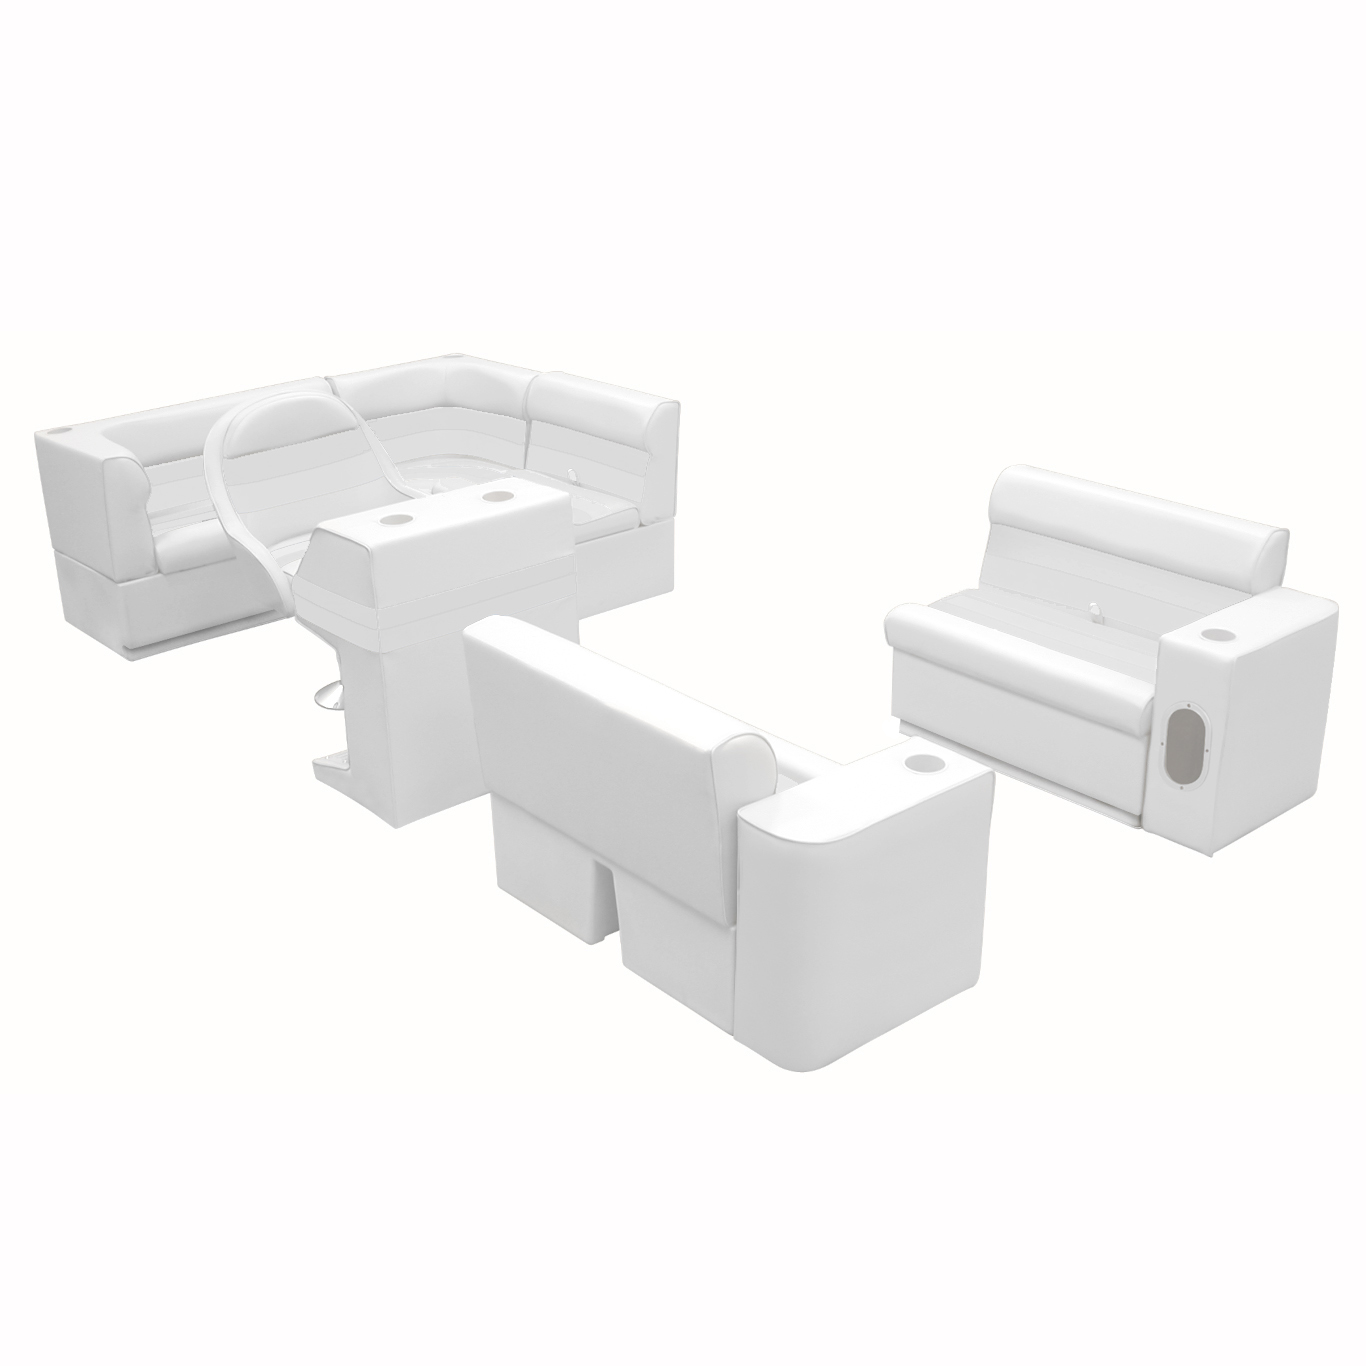 Deluxe Pontoon Furniture with Toe Kick Base, Group 1 Package, White